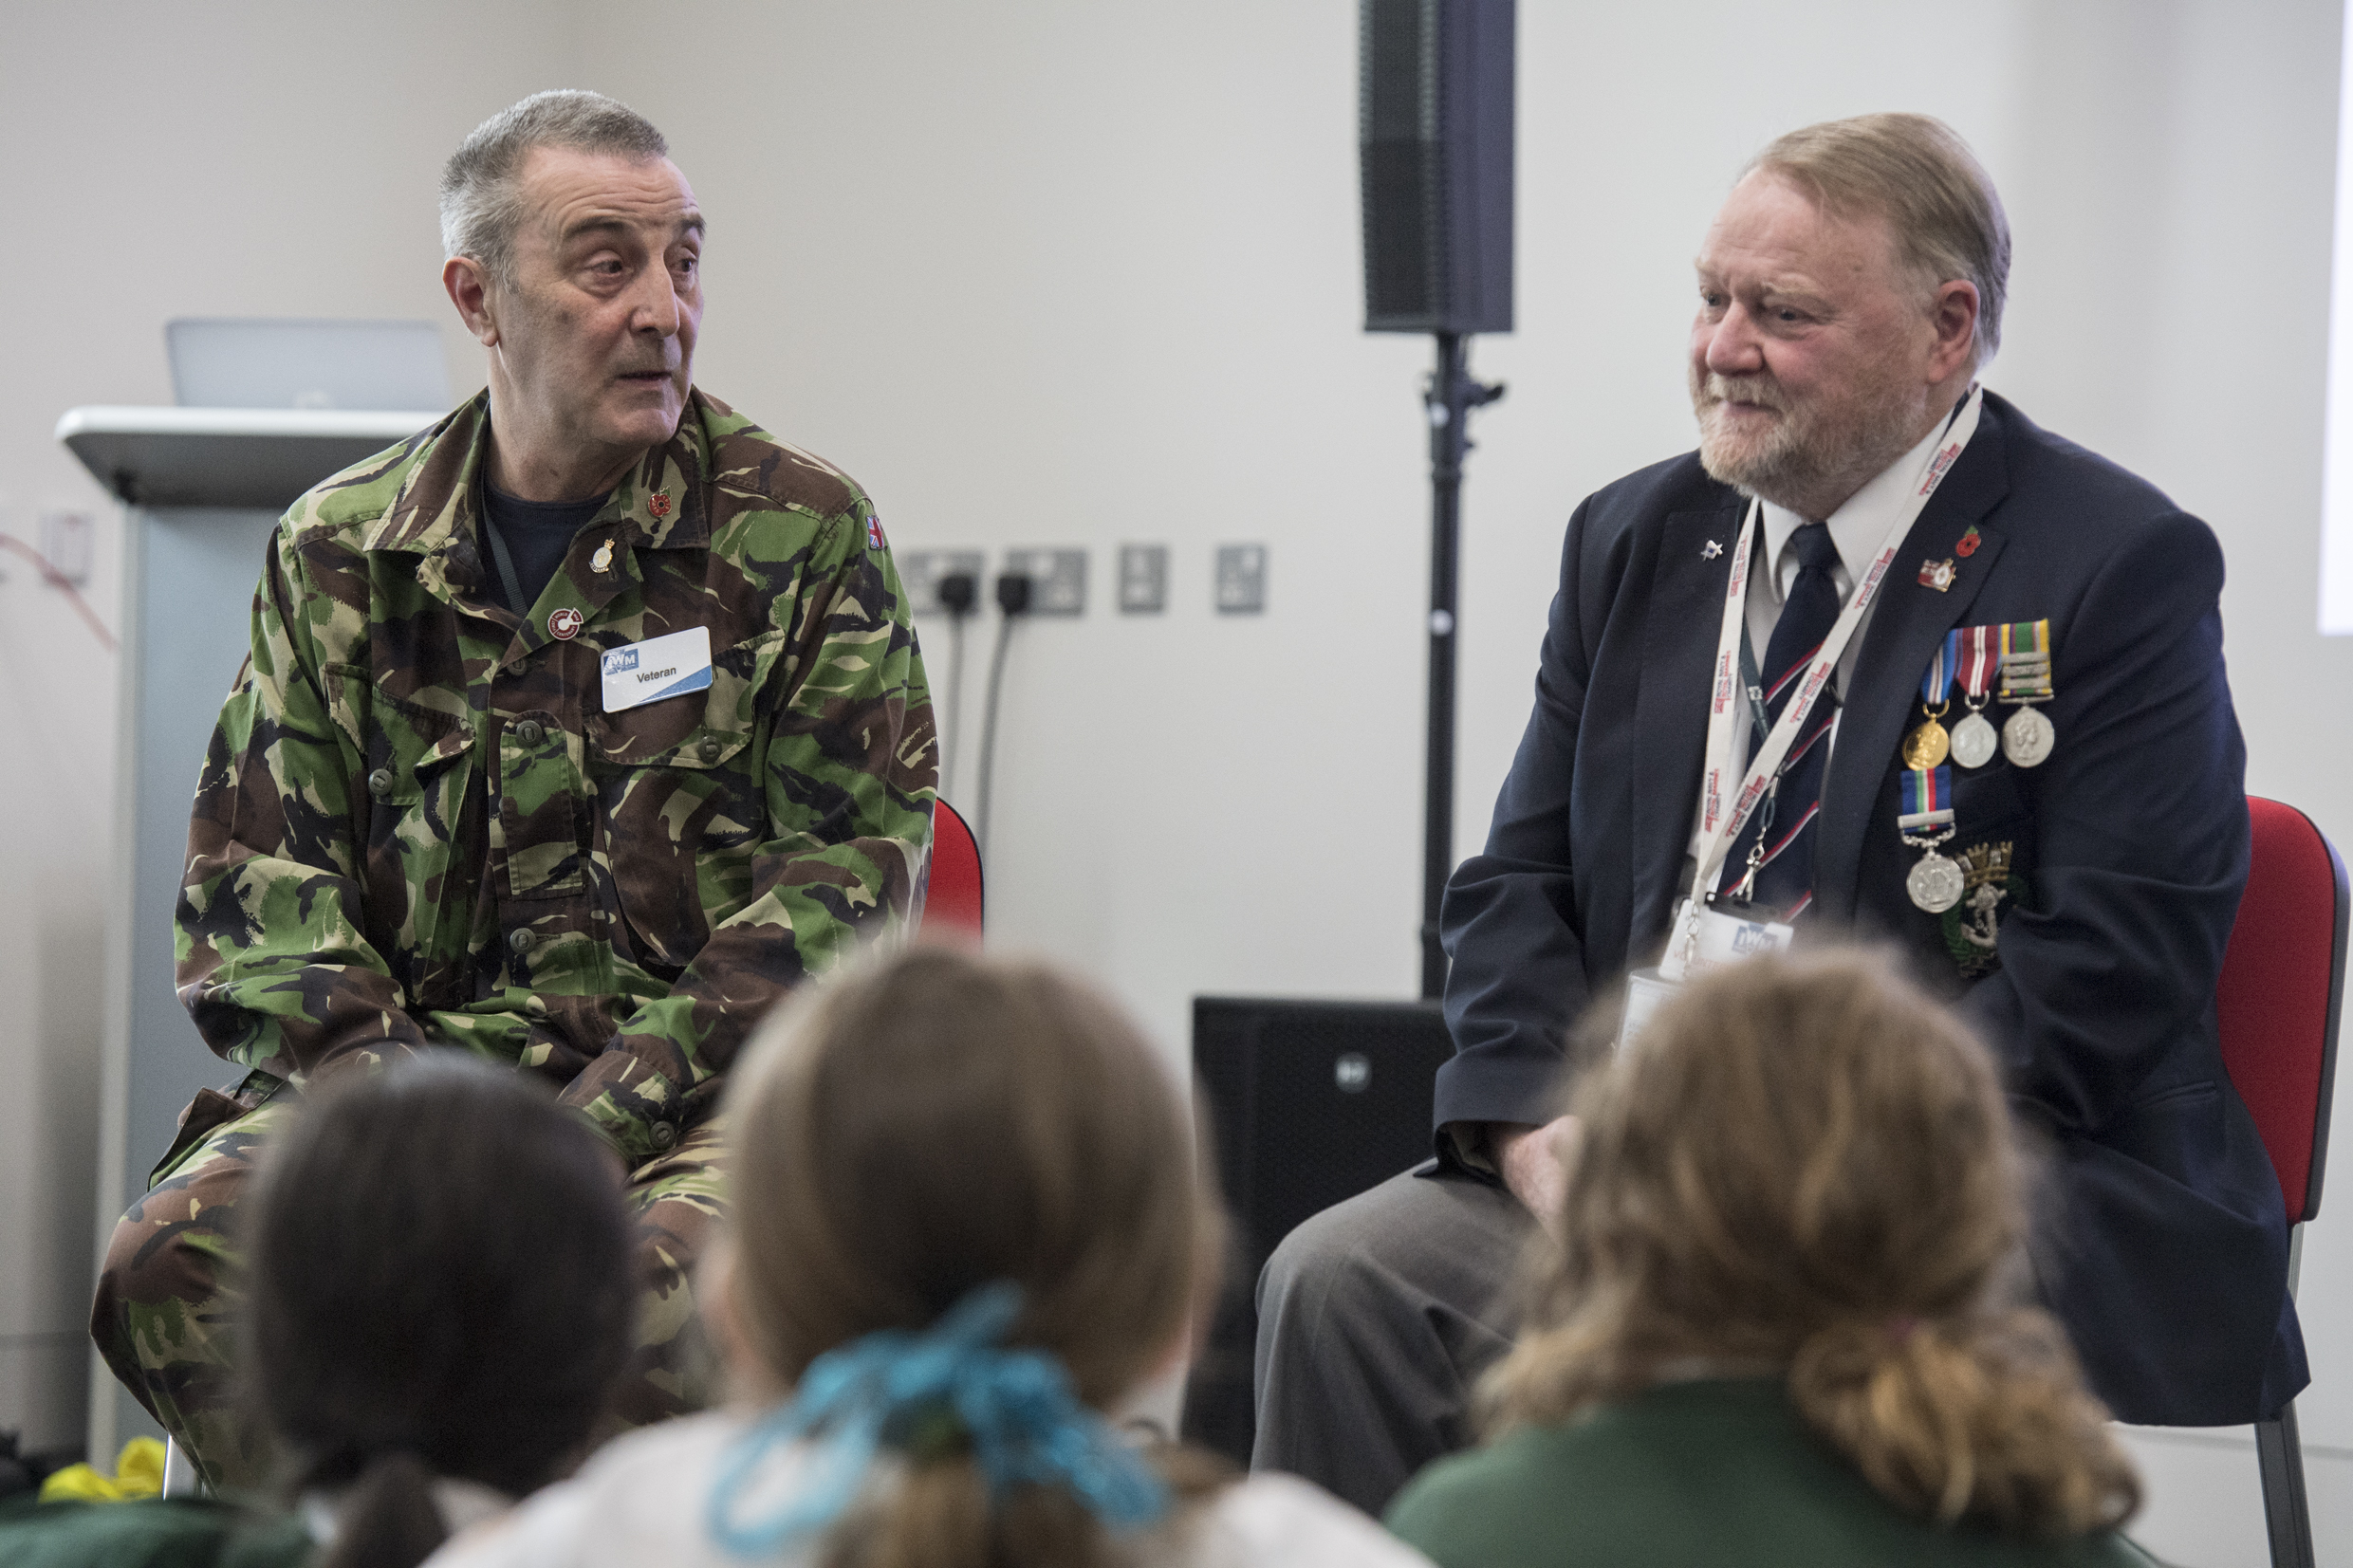 Two veterans sit on chairs in front of a group of school children